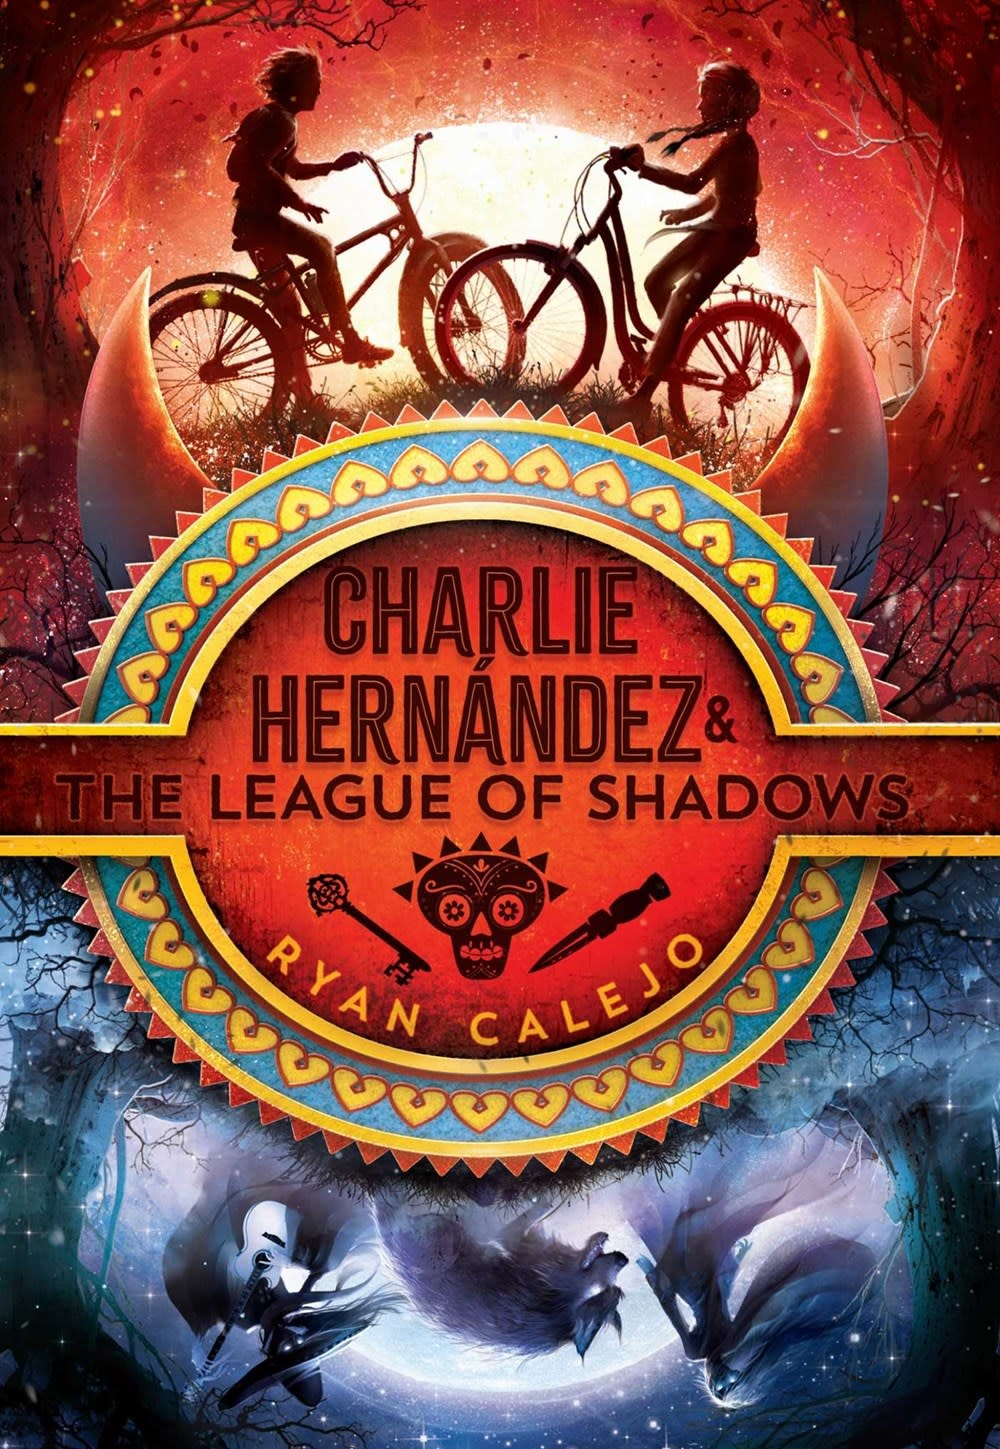 Aladdin Charlie Hernández 01 The League of Shadows